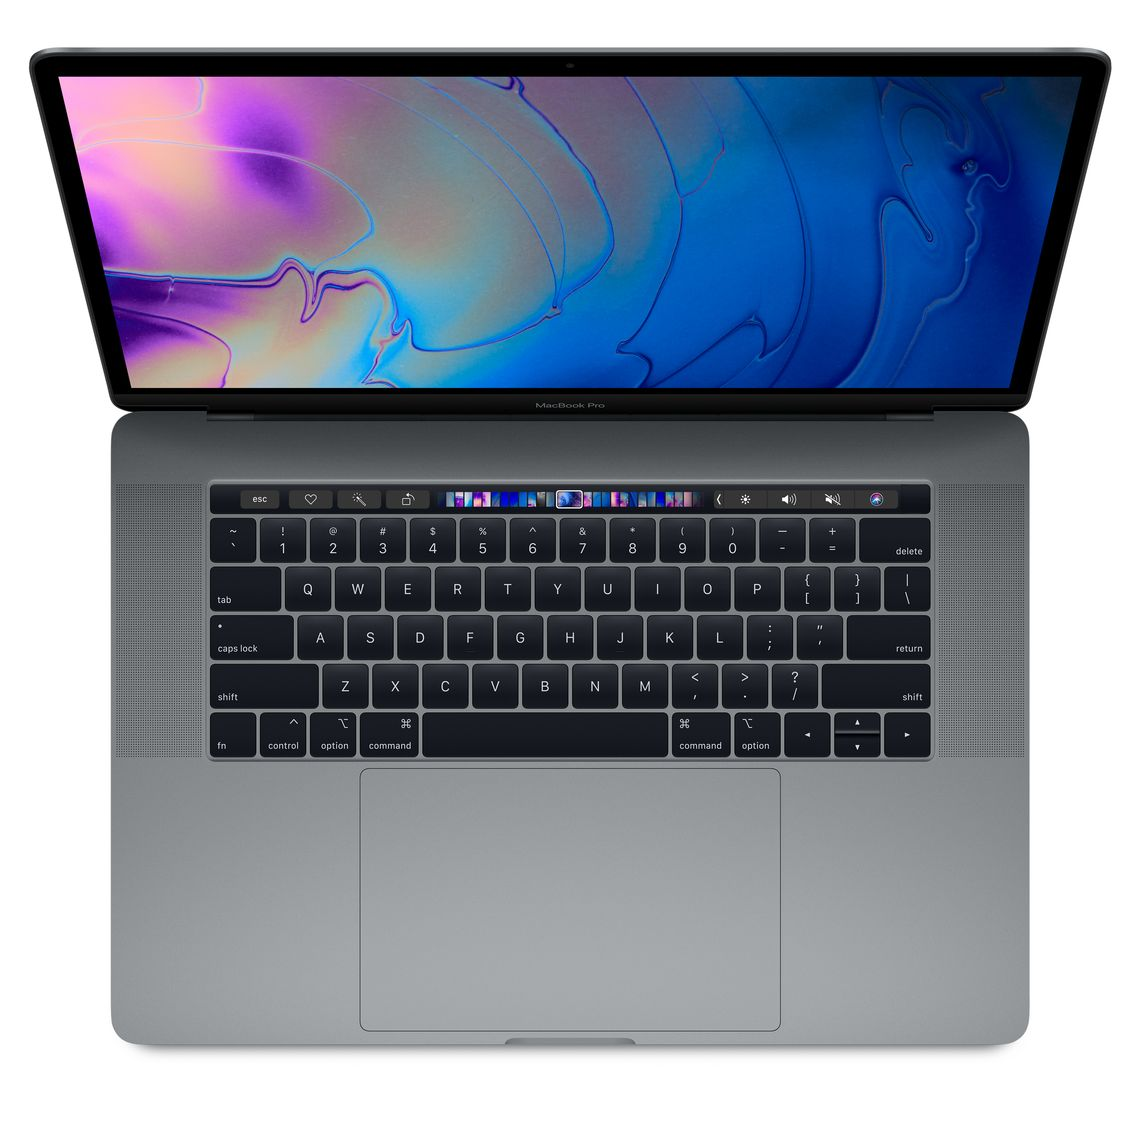 Refurbished MacBook Pro 15.4 pulgadas Intel Core i7 2.2Ghz con Pantalla Retina